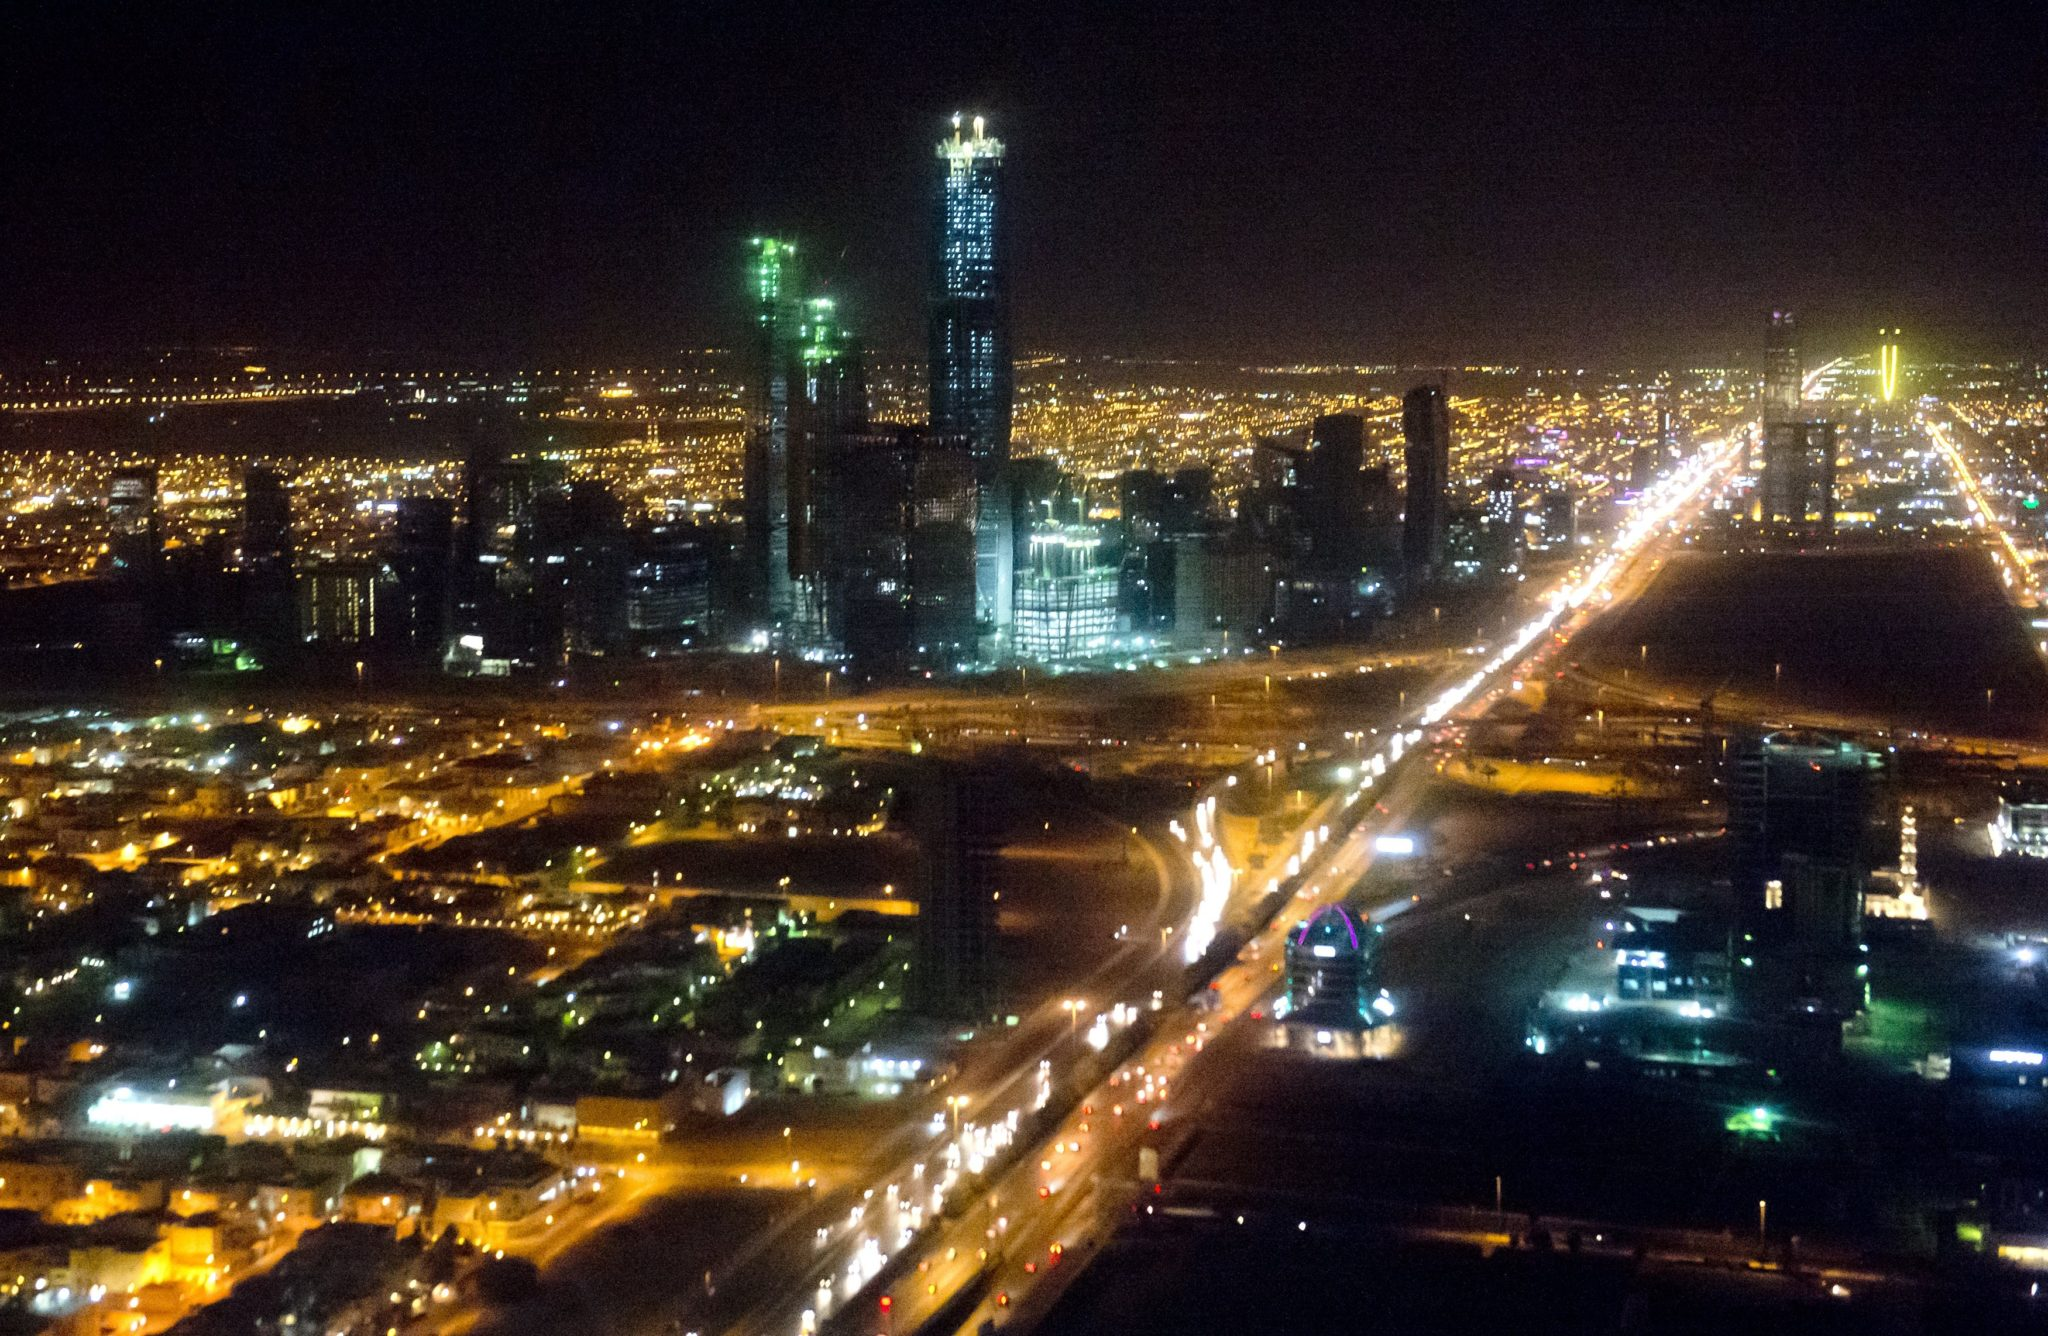 Five ways for Saudi Arabia to deliver true human rights reform